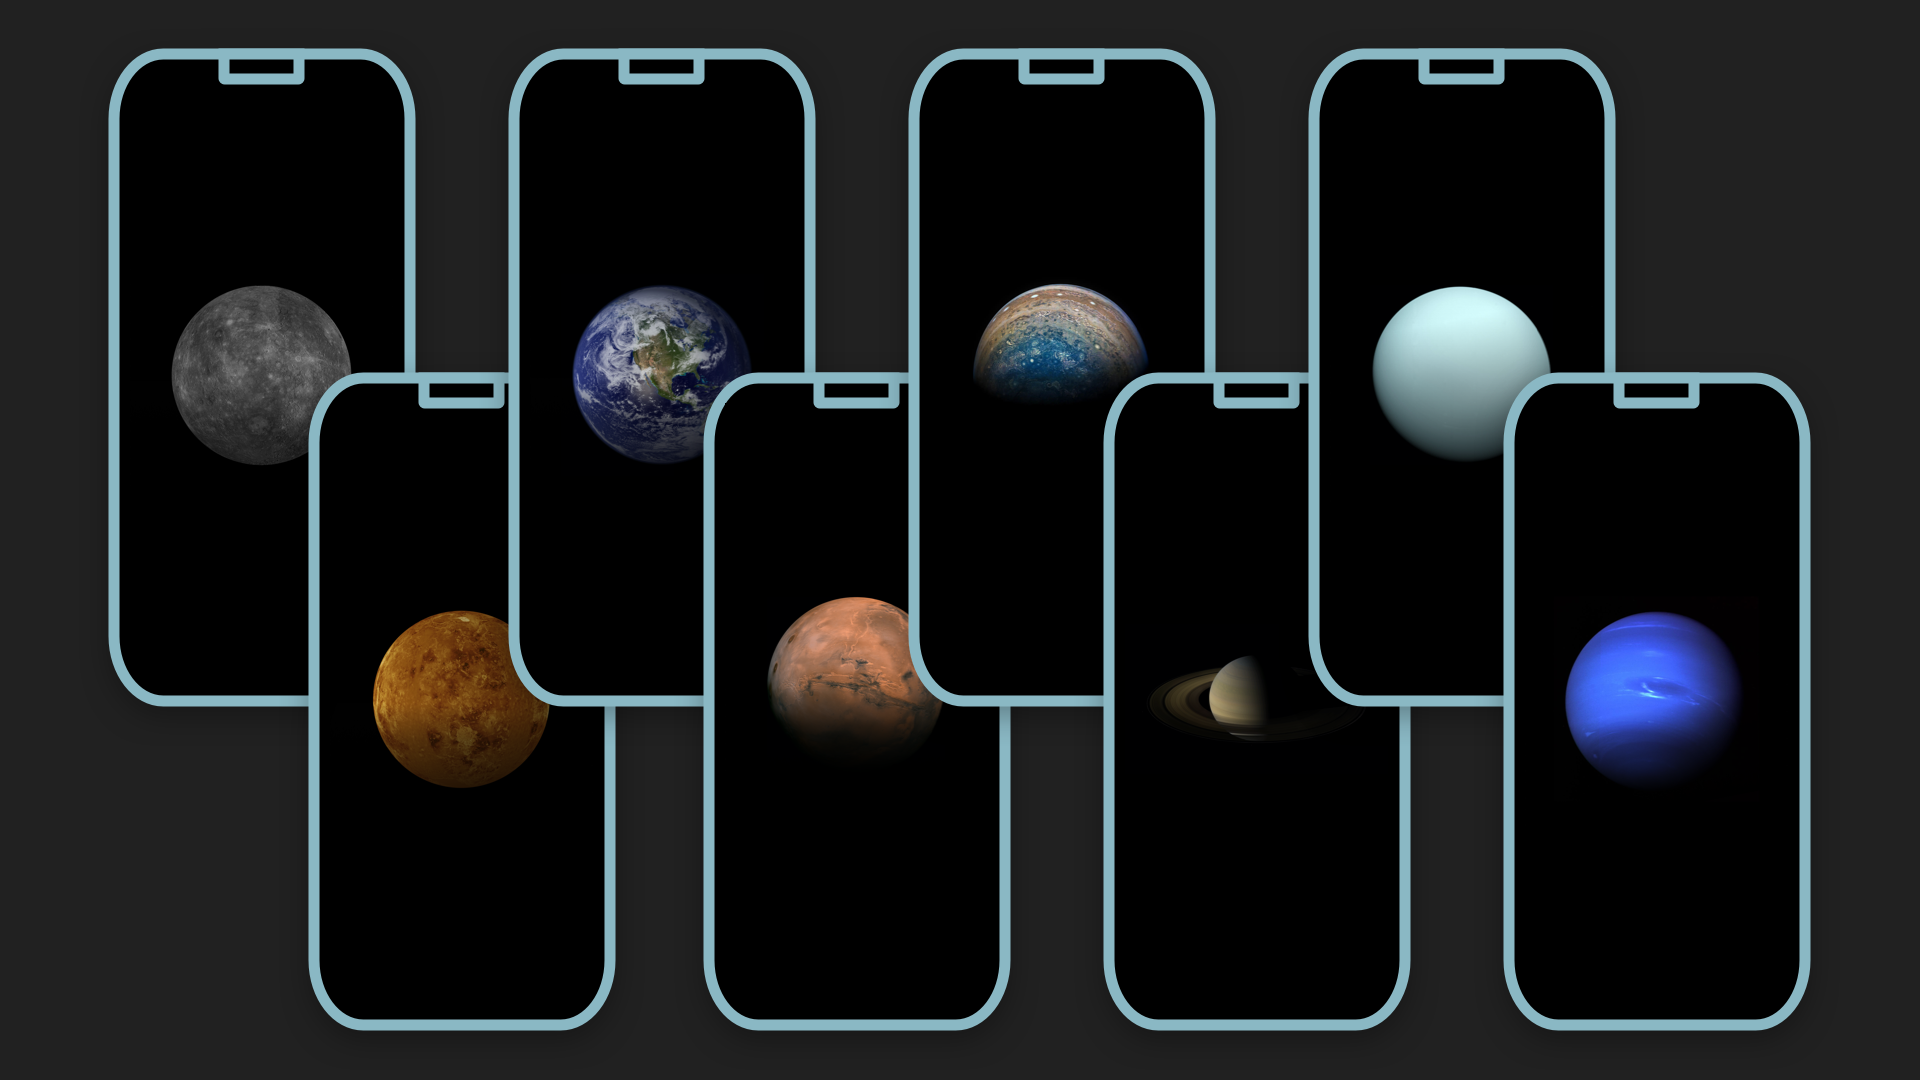 New High Res iPhone Wallpapers for Each Planet